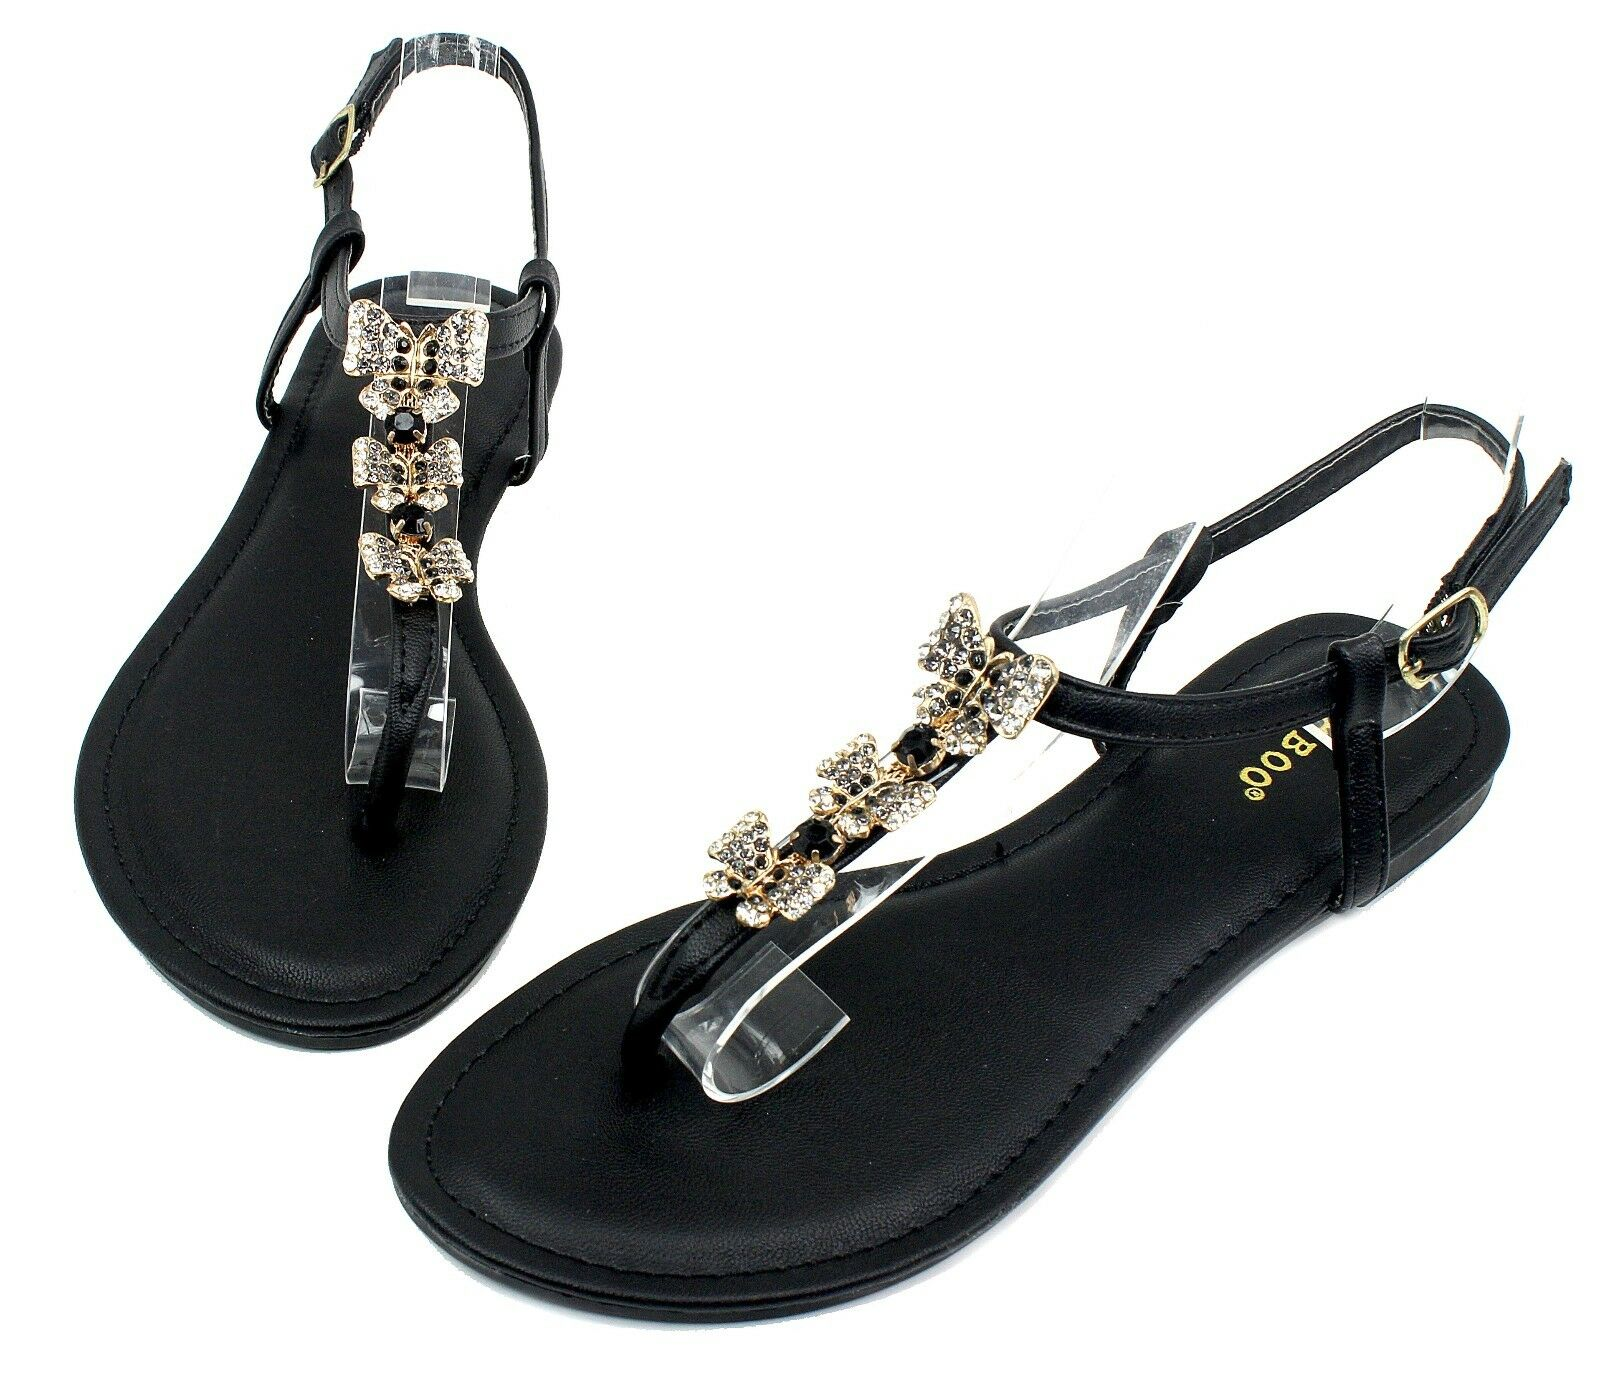 Grayson-17 Fashion Butterfly Shoes Stone Flat Cute Sandals Party Women Shoes Butterfly Black 6.5 1b57e4